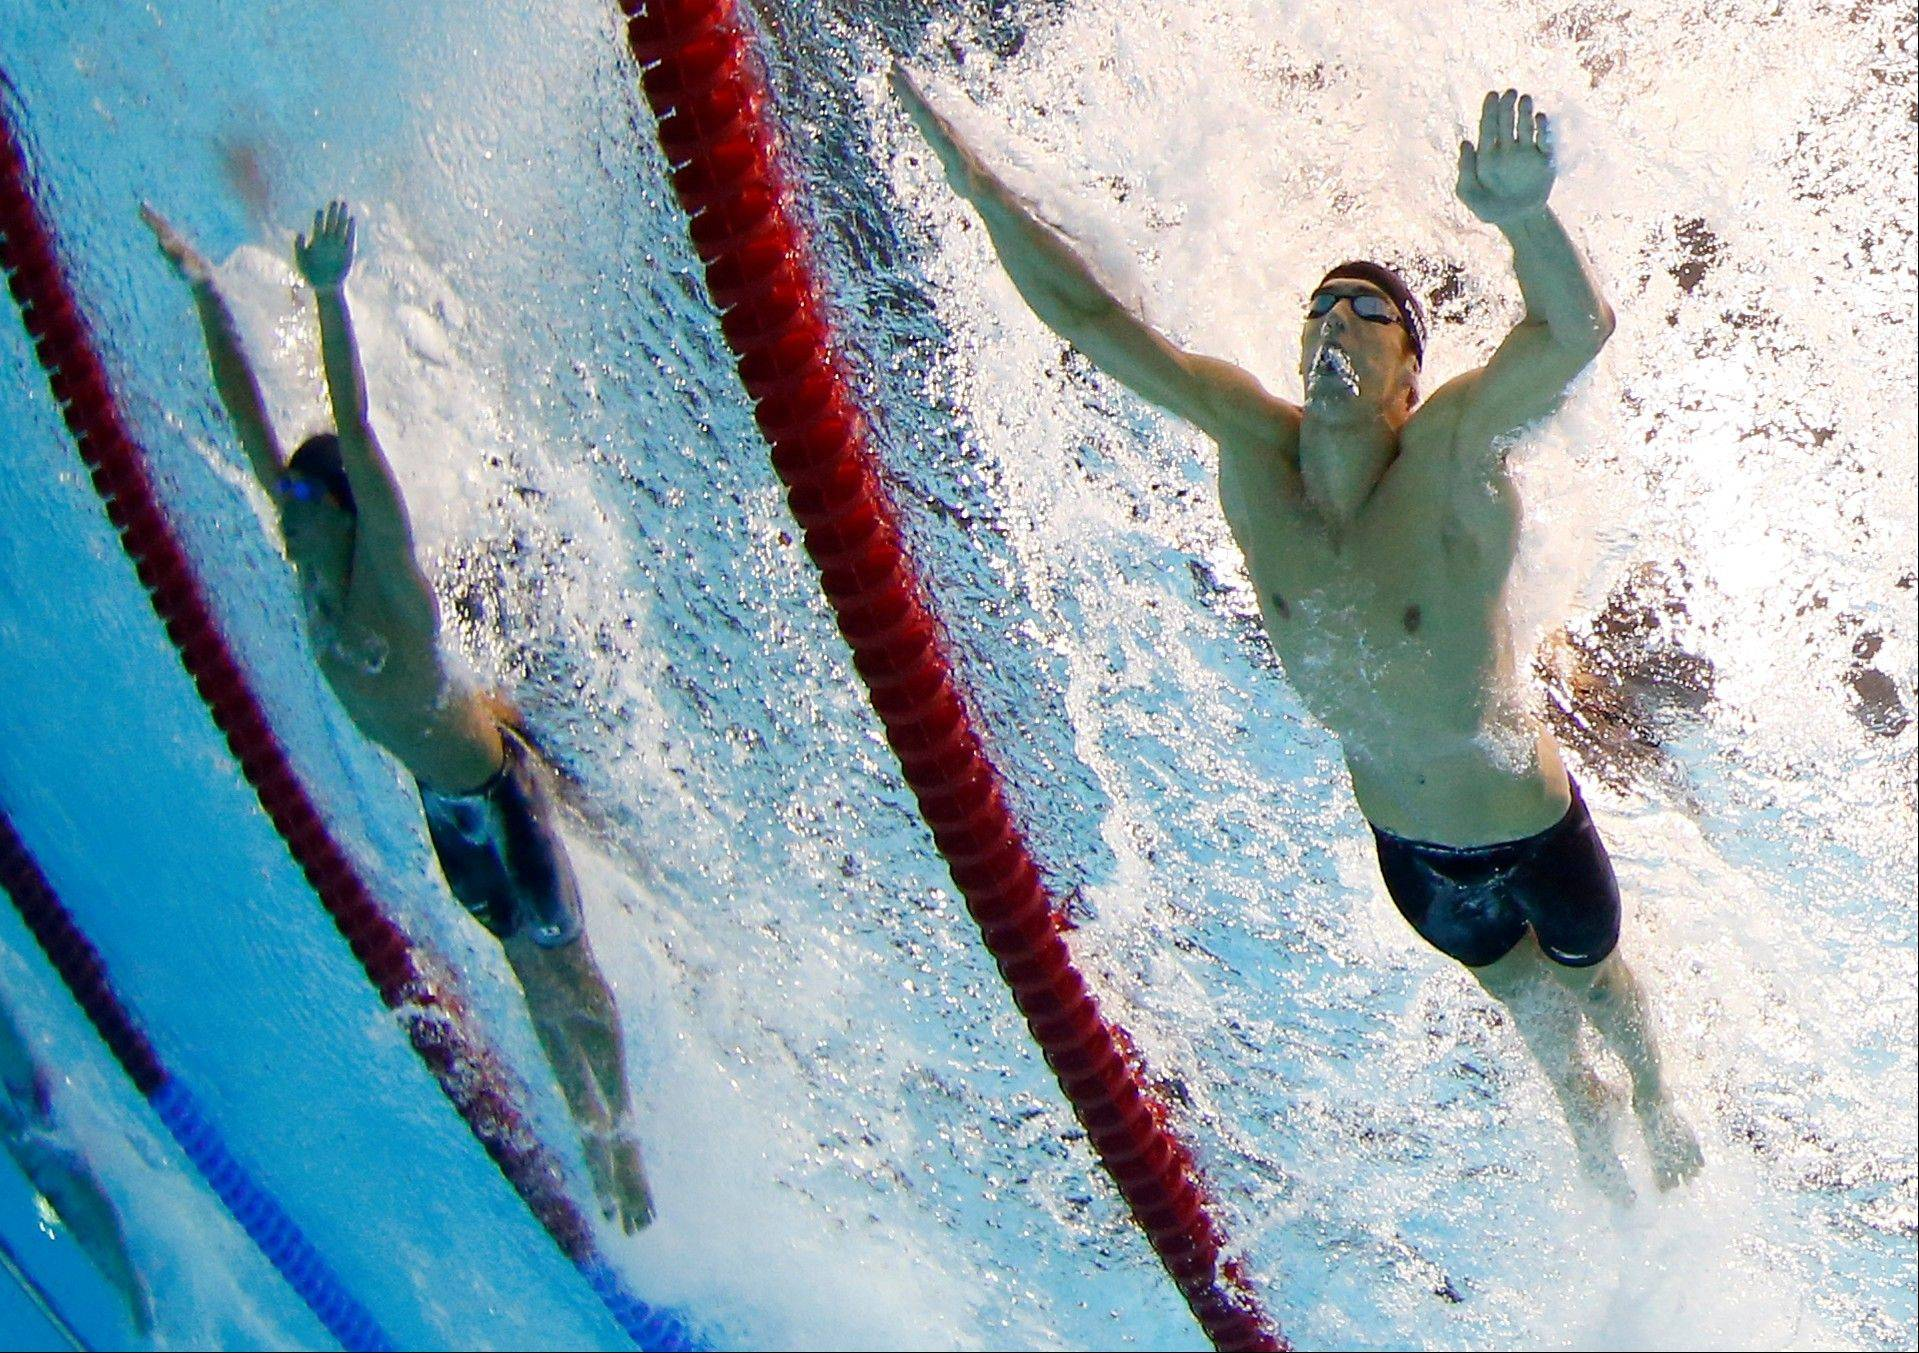 United States' Michael Phelps, right, swims in the men's 4 X 100-meter medley relay final at the Aquatics Centre in the Olympic Park during the 2012 Summer Olympics in London, Saturday, Aug. 4, 2012. Phelps pushed the United States in front to win the medley relay Saturday in the final swimming event of the London Games, after which he is retiring. He leaves the sport with a record 18 golds and 22 medals overall.